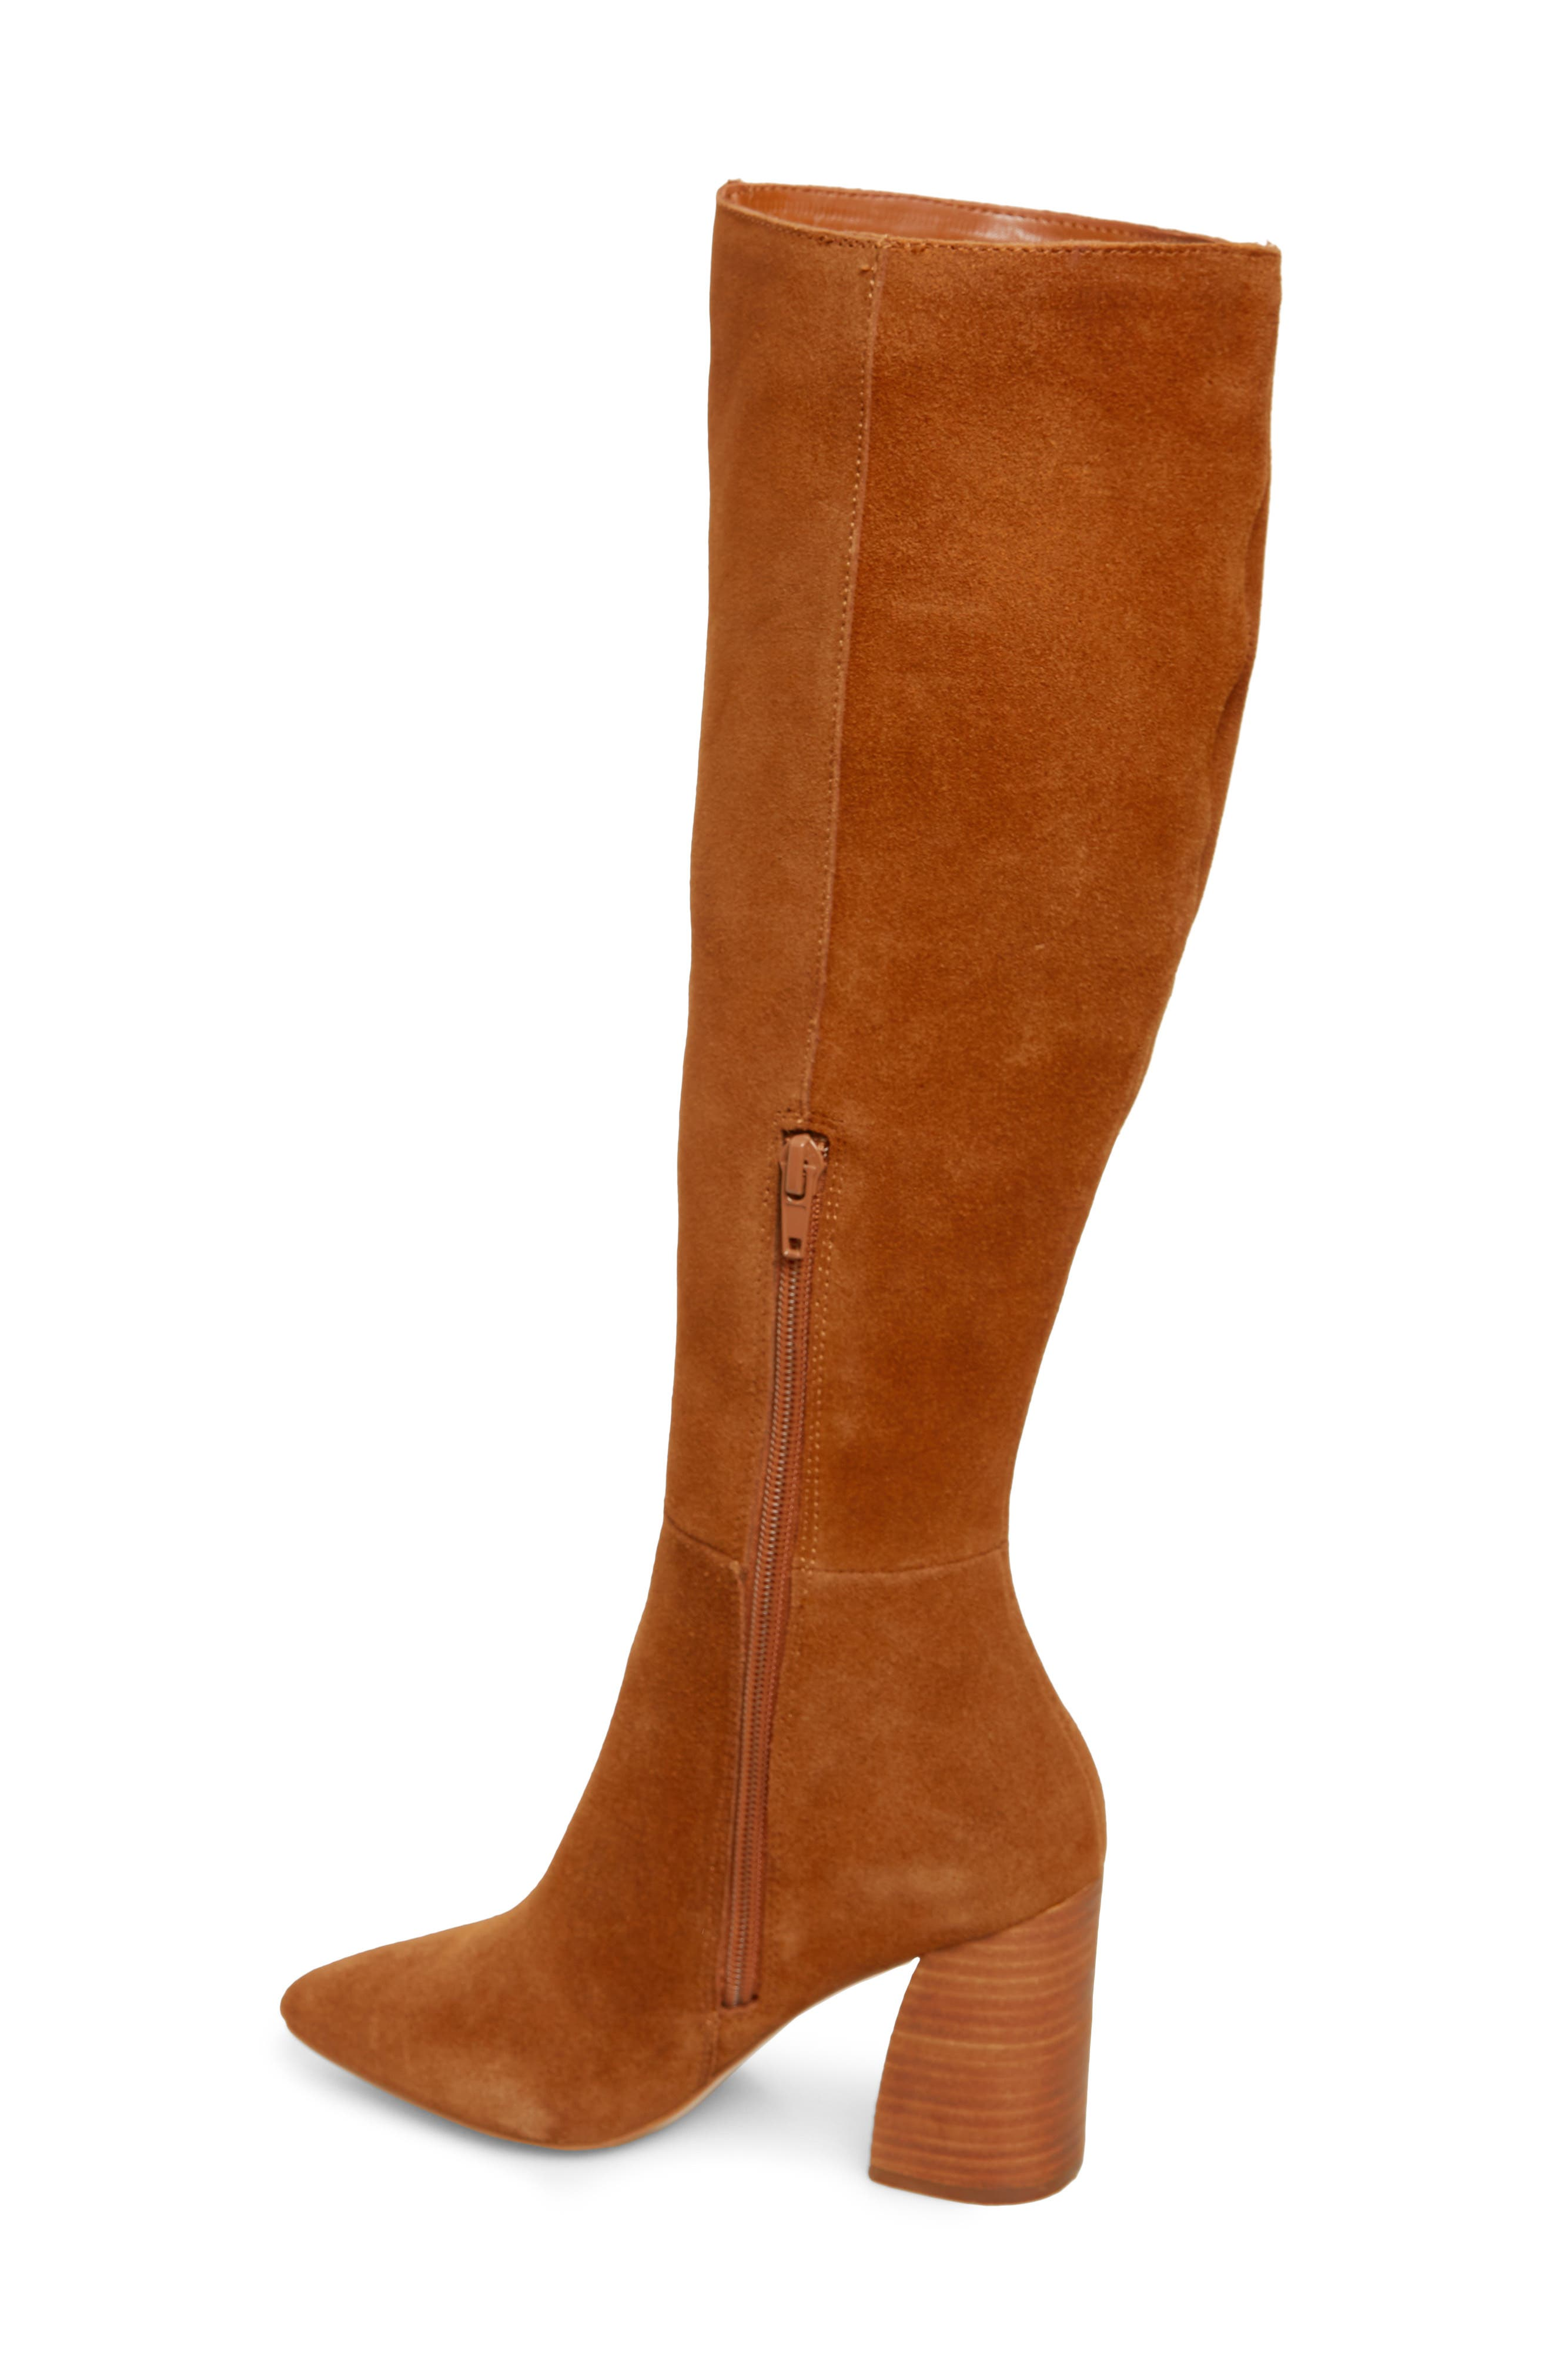 Serve Knee High Boot,                             Alternate thumbnail 2, color,                             CHESTNUT SUEDE